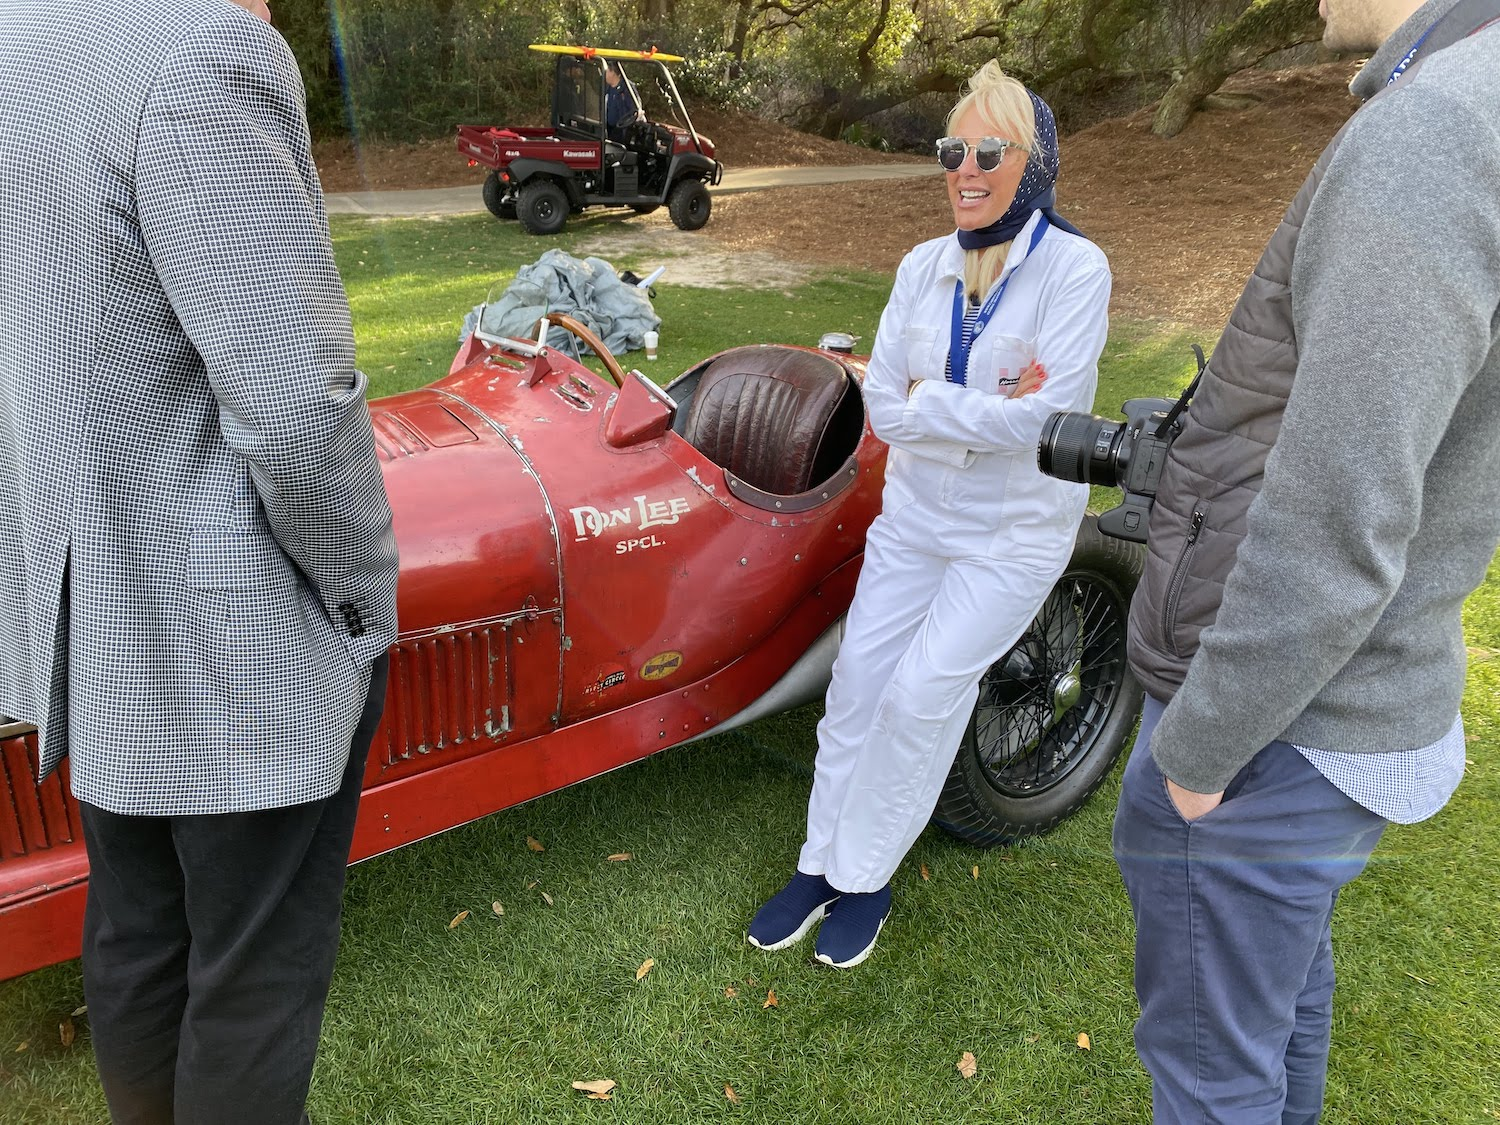 alfa romeo race car woman dressed in race suit attire